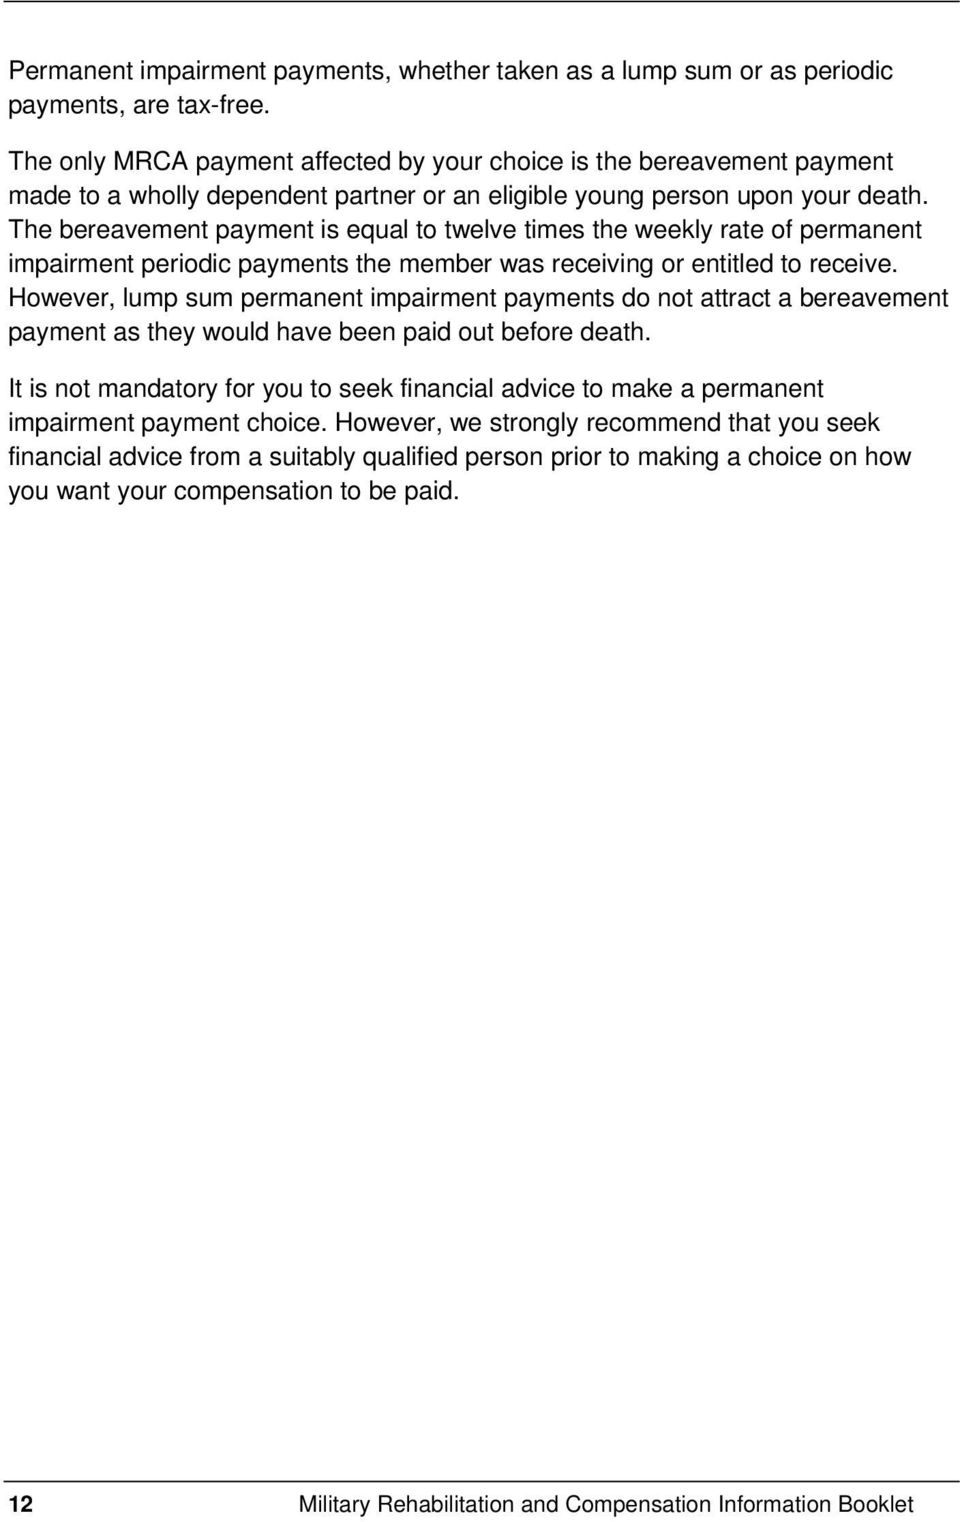 The bereavement payment is equal to twelve times the weekly rate of permanent impairment periodic payments the member was receiving or entitled to receive.